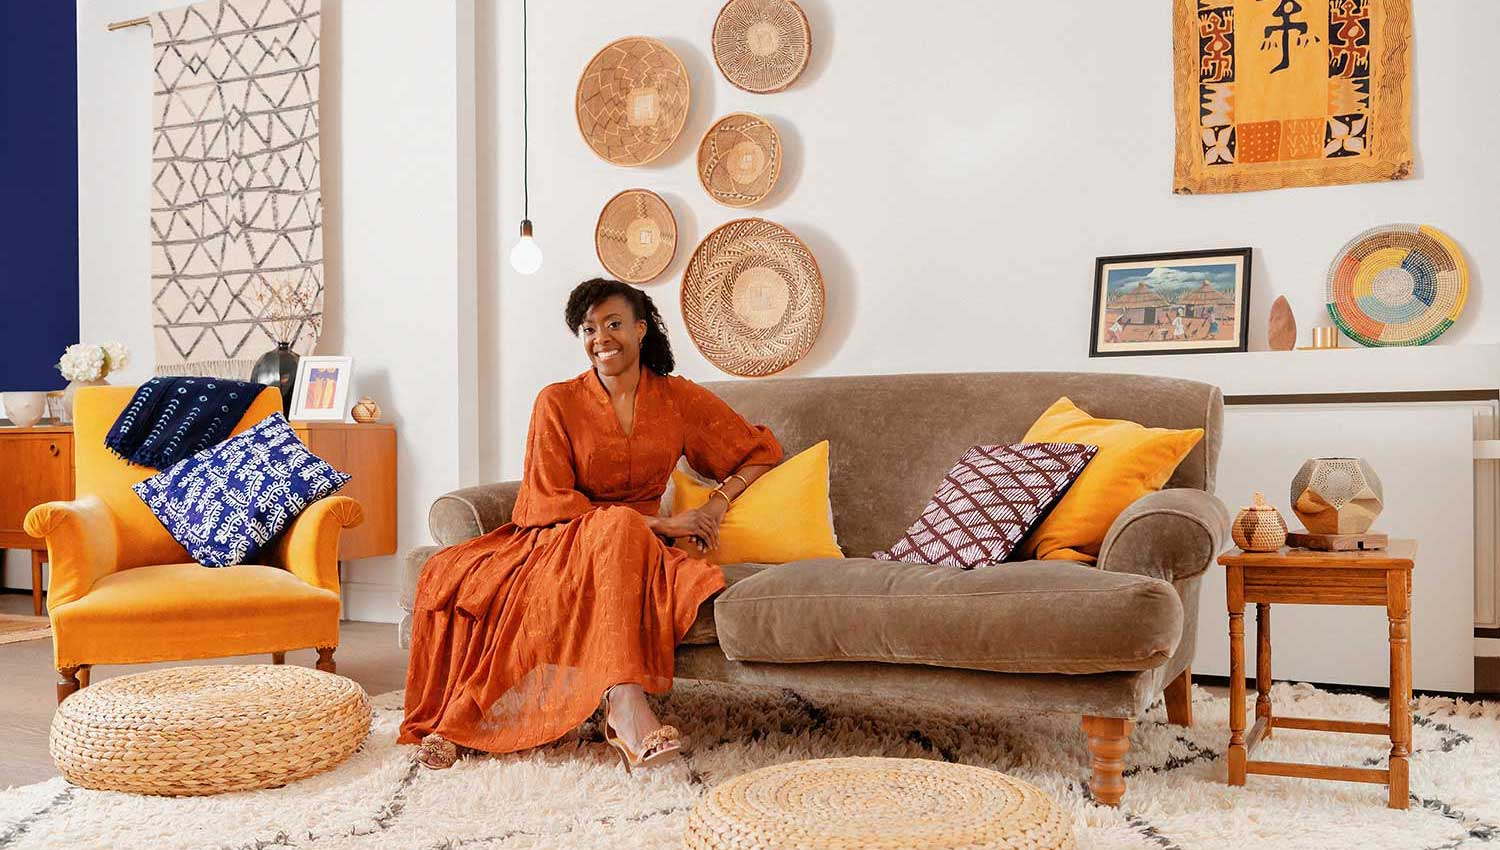 atelier 55 - Contemporary African Design